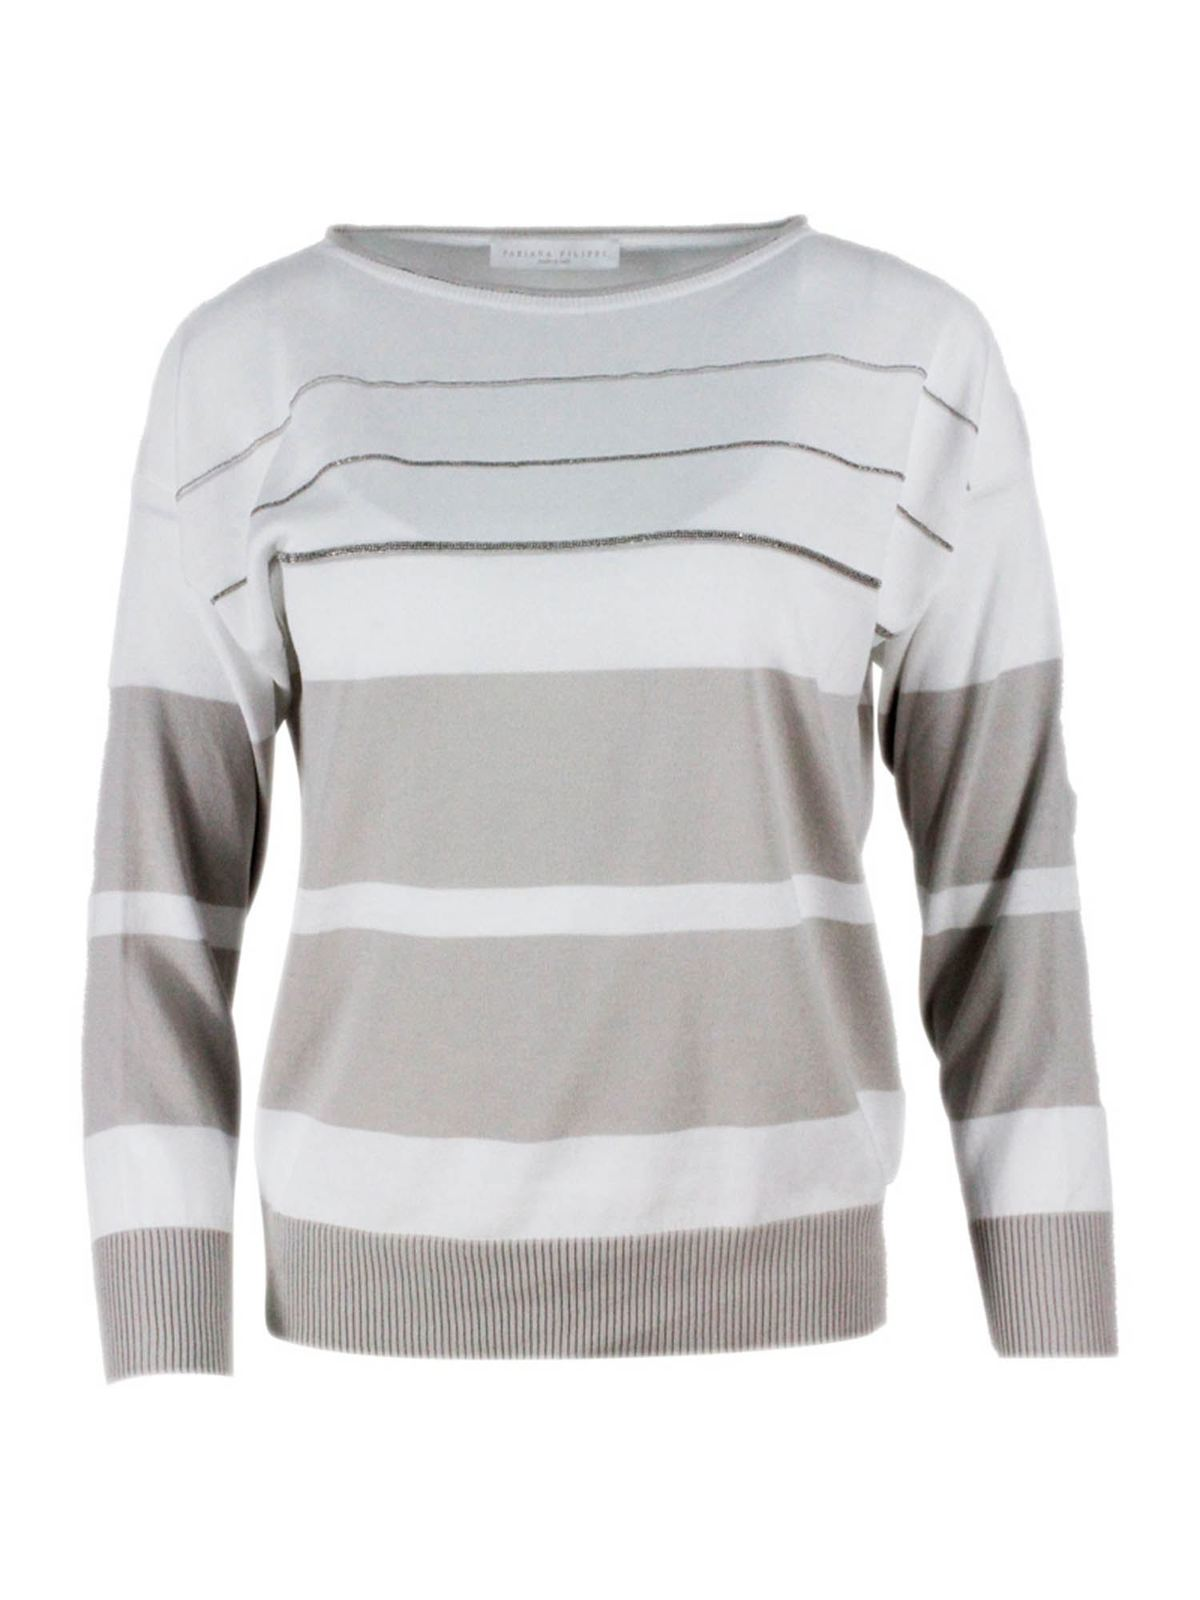 Fabiana Filippi STRIPED SWEATER IN WHITE AND BEIGE